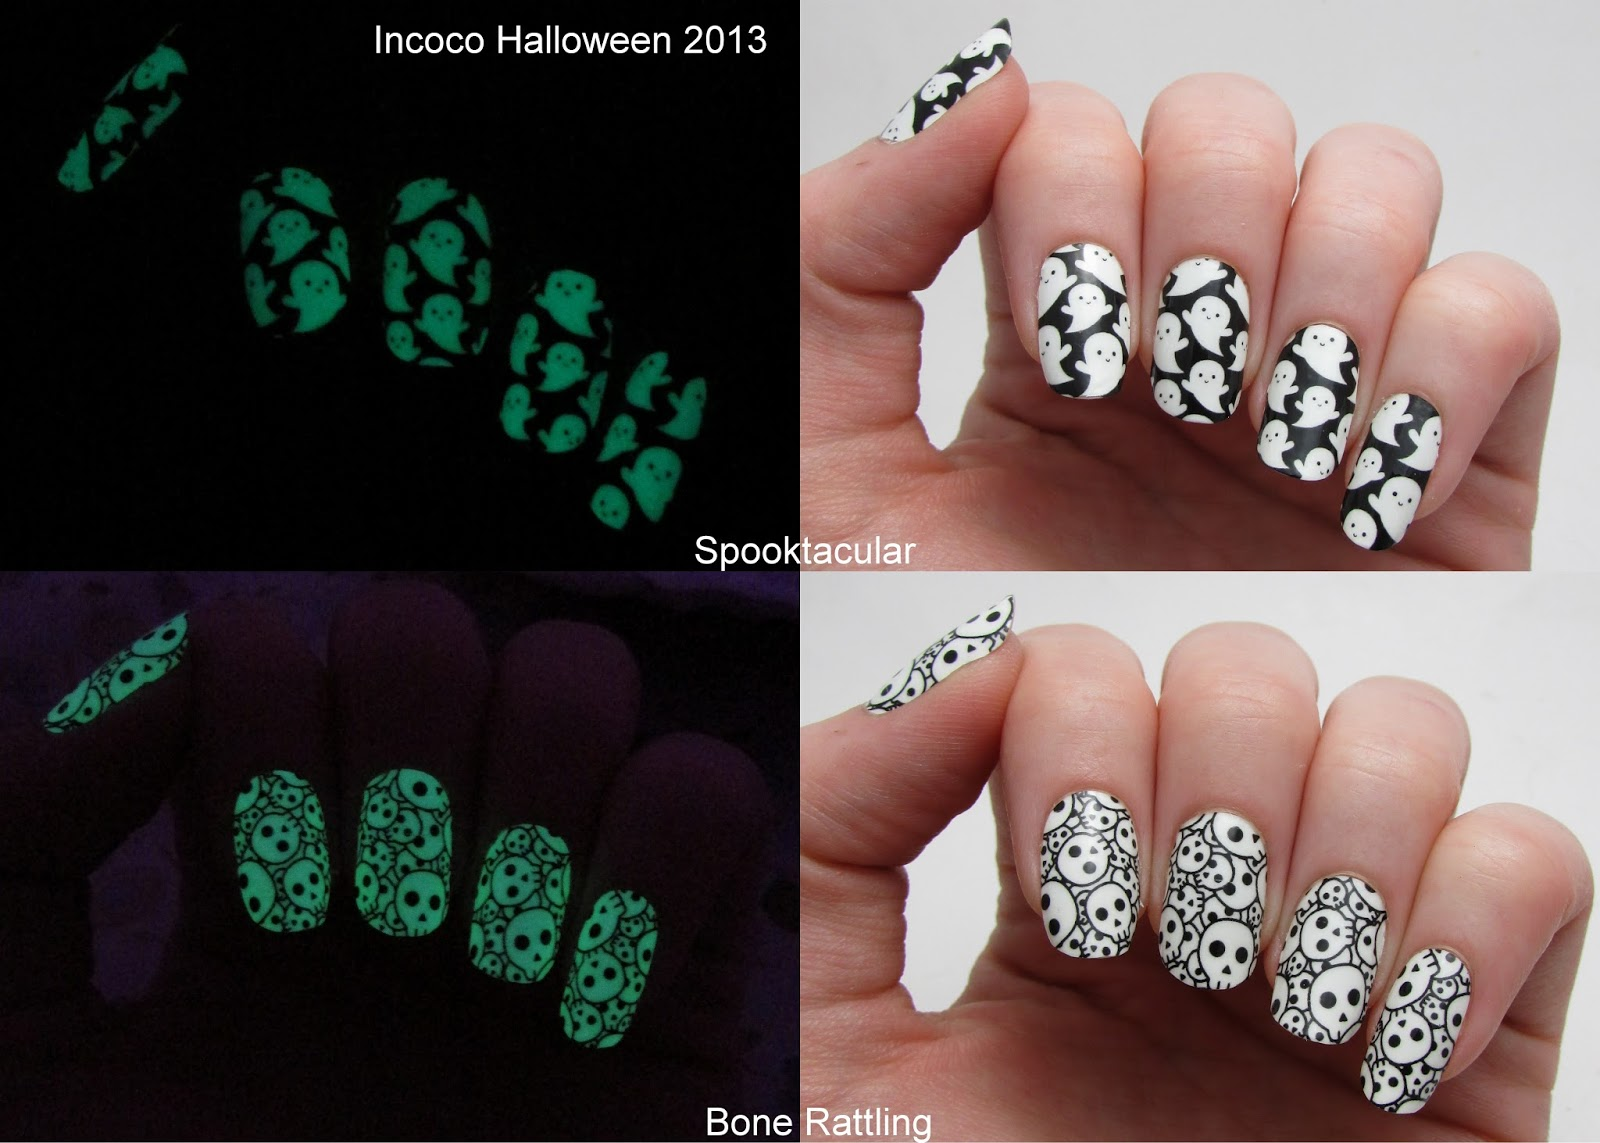 Incoco Fright Night Halloween Collection, Part 2! - Adventures In ...